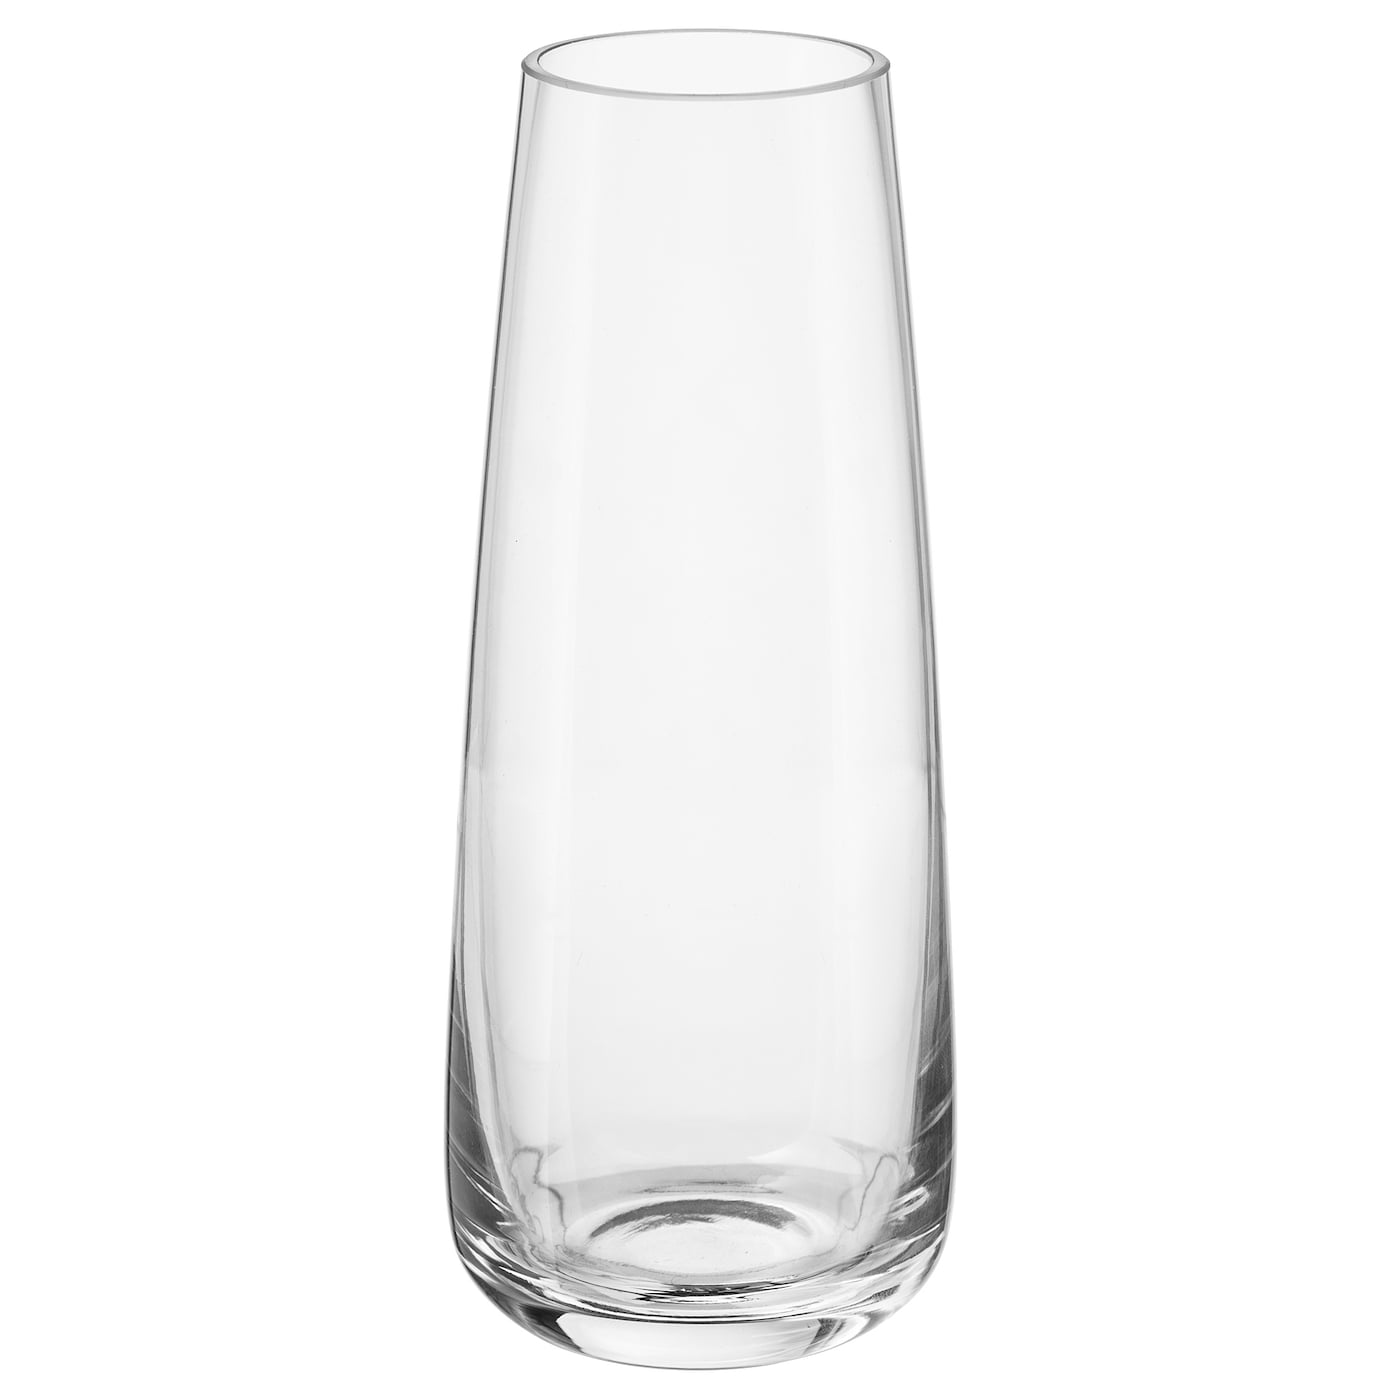 IKEA BERÄKNA vase The glass vase is mouth blown by a skilled craftsperson.